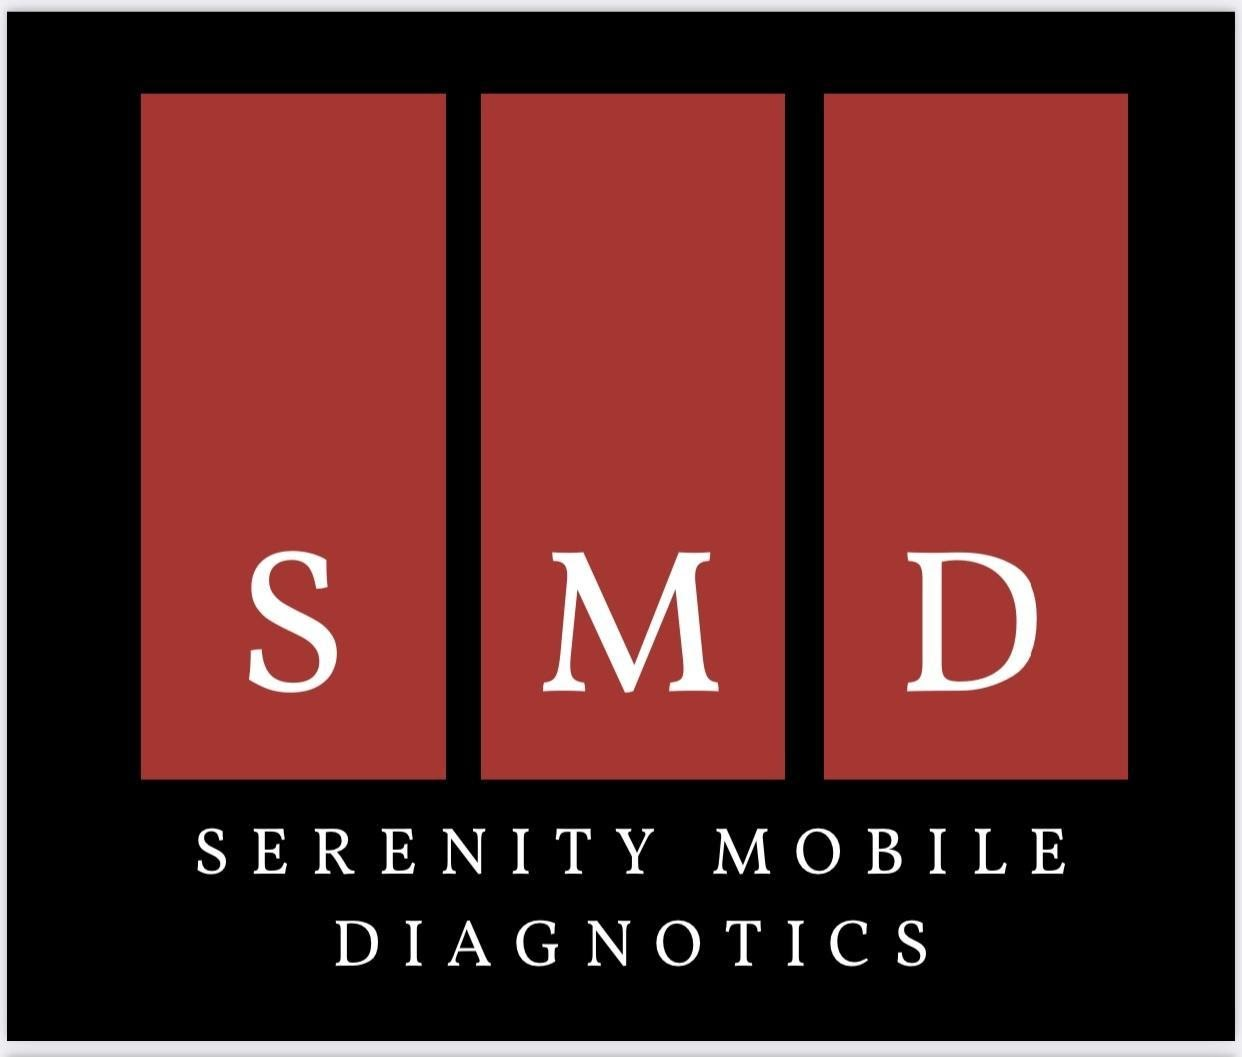 Serenity Diagnostics Announces Mobile Phlebotomy Service in the Bronx, NY 1